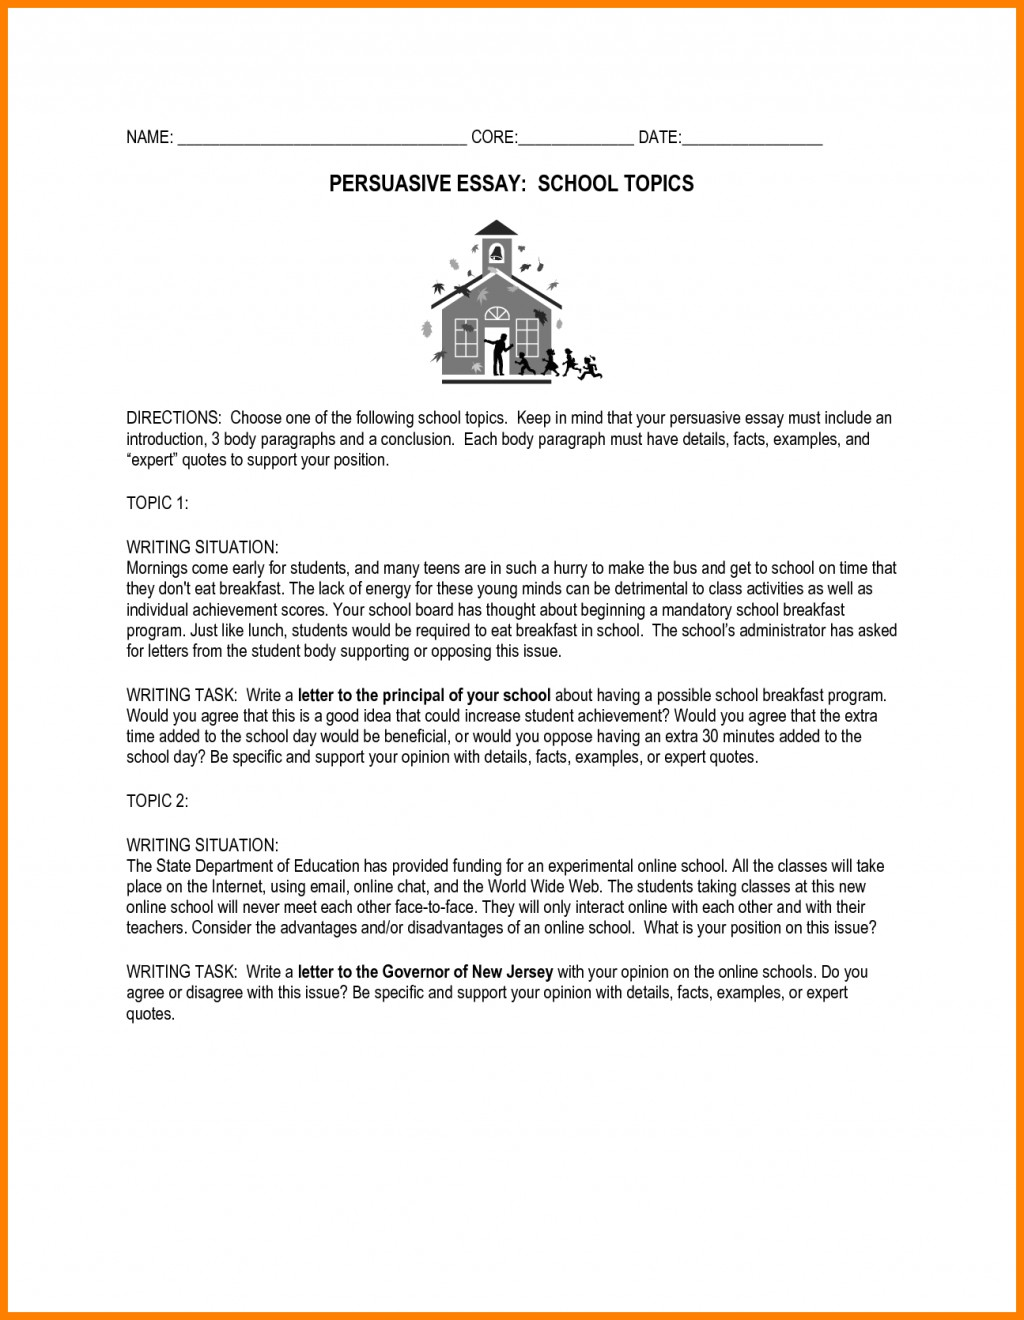 014 Essay Example Essays For Middle School Awesome Collection Of Persuasive Topics High Fabulous Prompts Shocking Argumentative Nonfiction Students Large